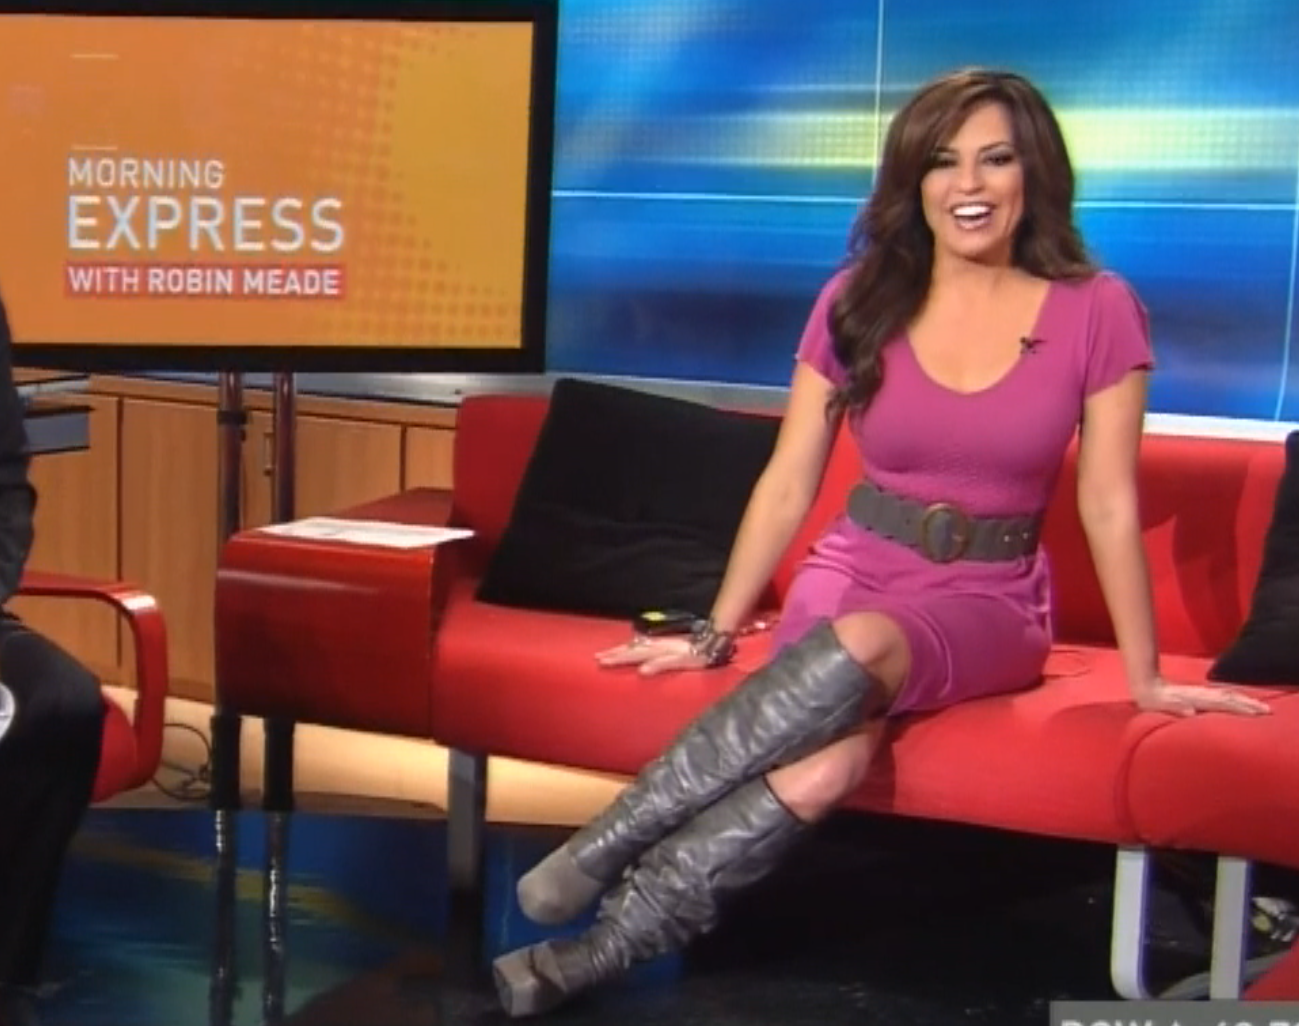 Robin Meade Pussy Stunning robin meade nude pictures - sexpics.download - erotic and porn images